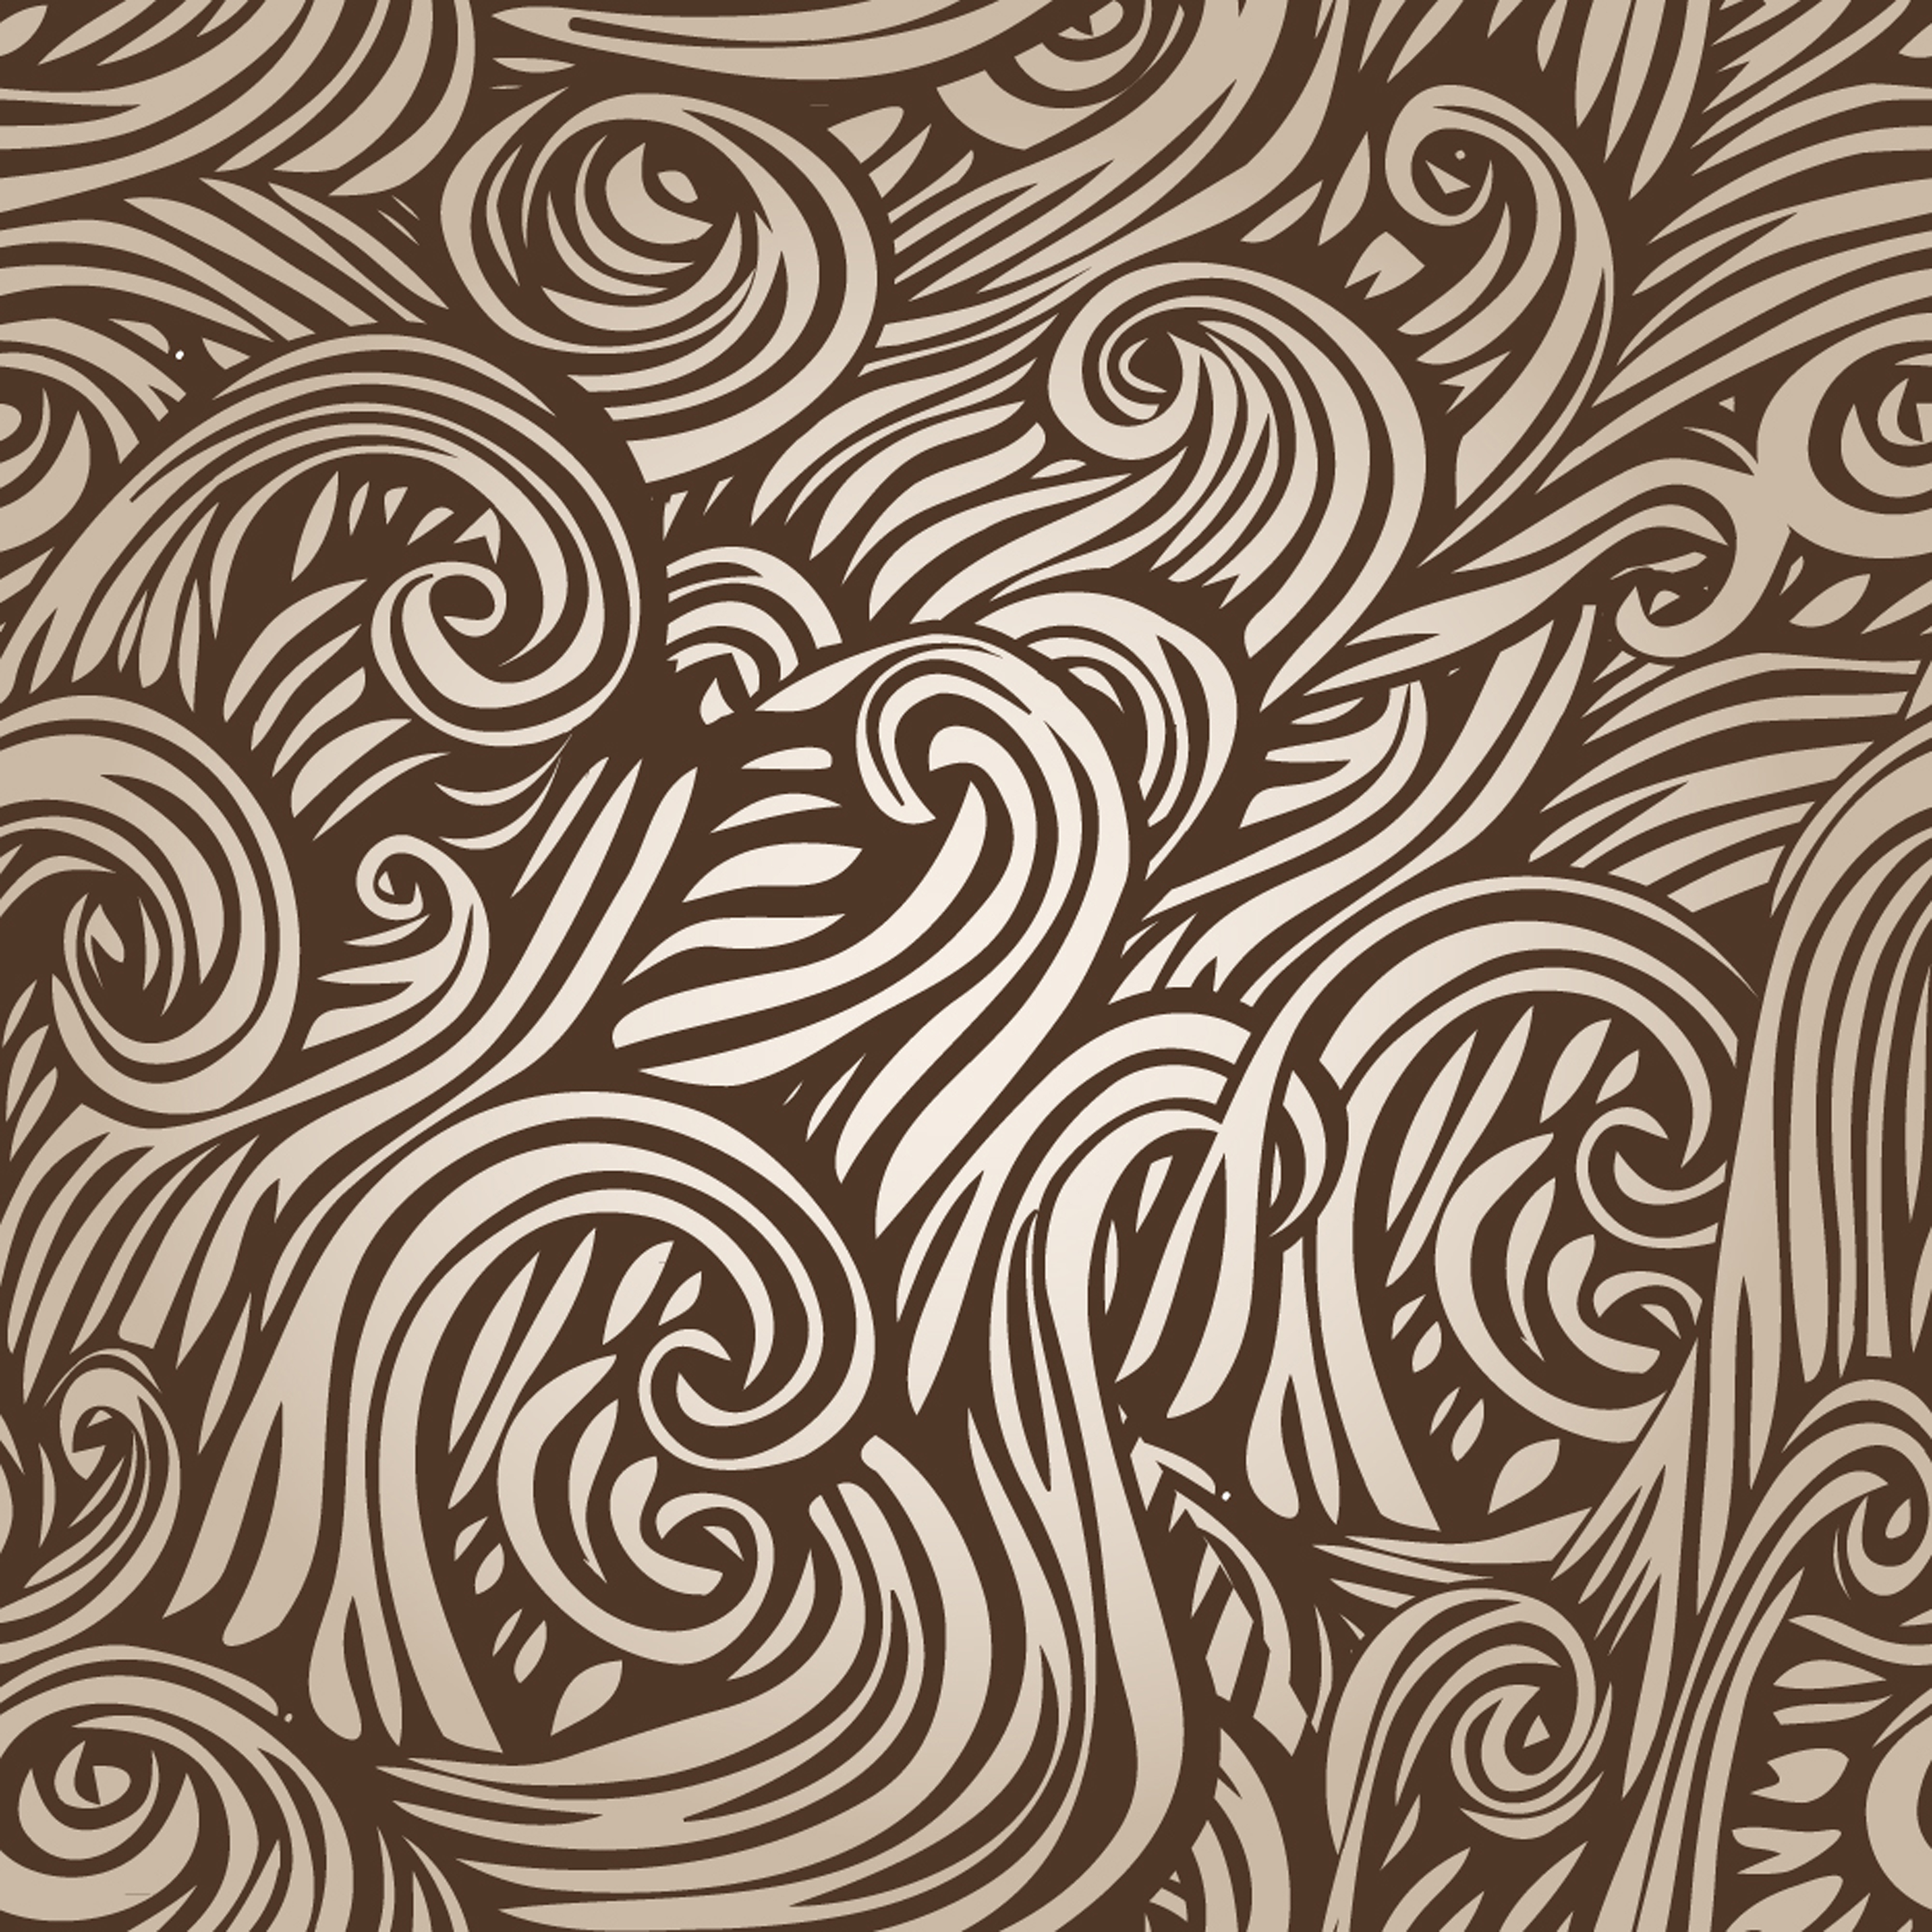 Background pattern